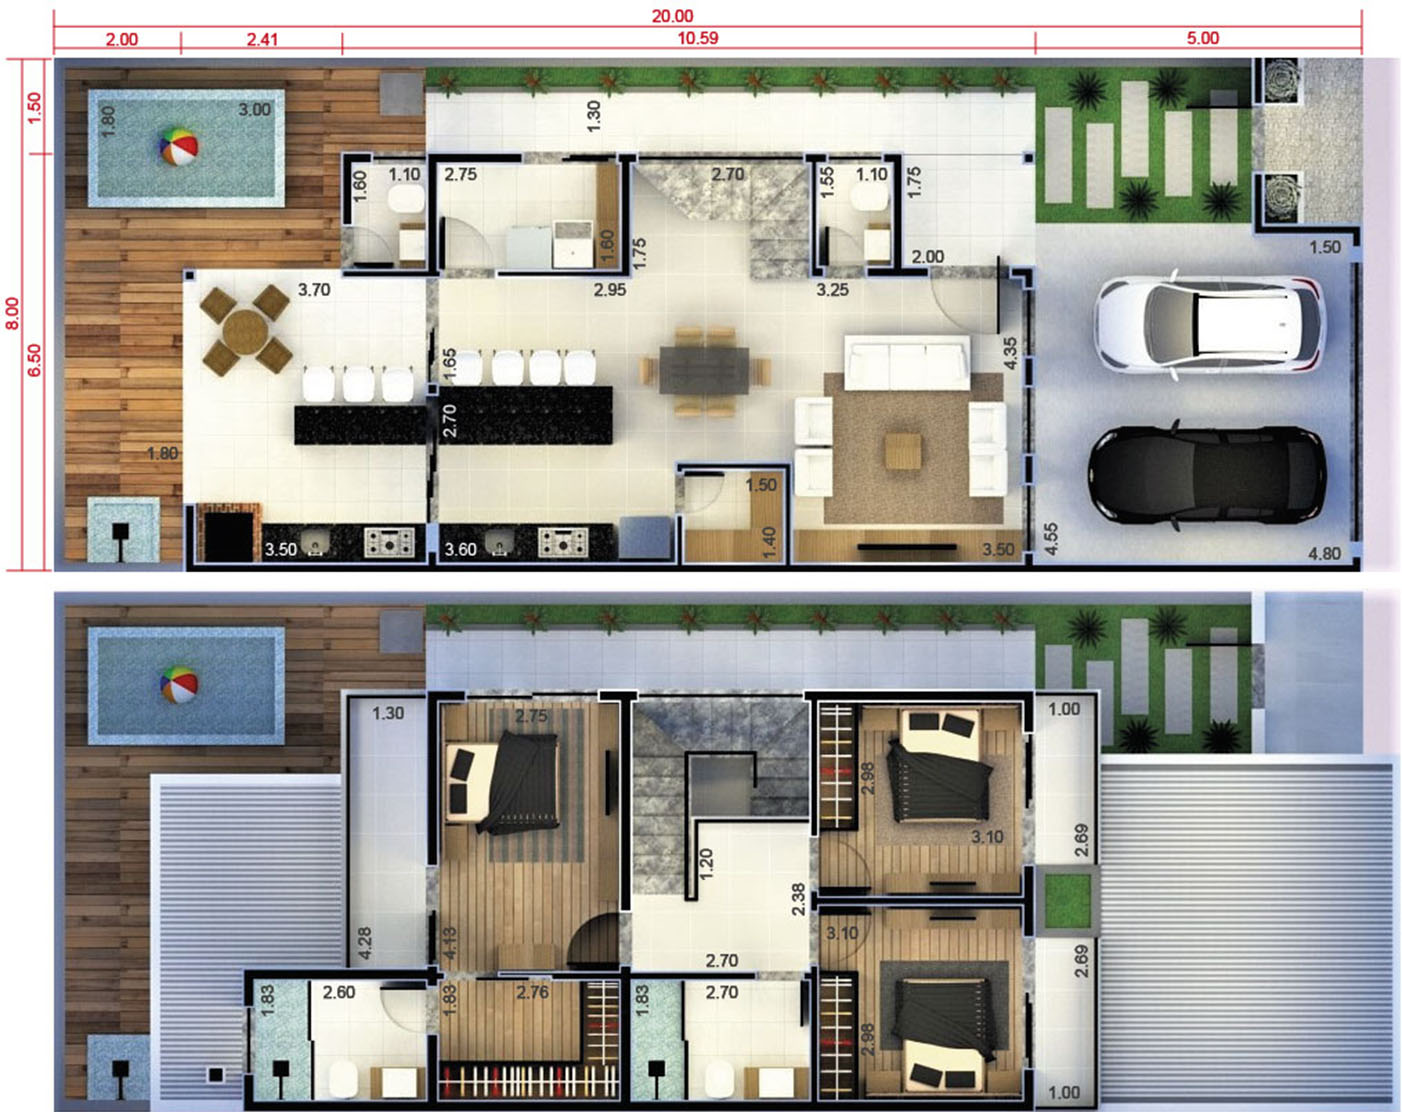 Floor plan with 2 bedrooms and 1 suite8x20